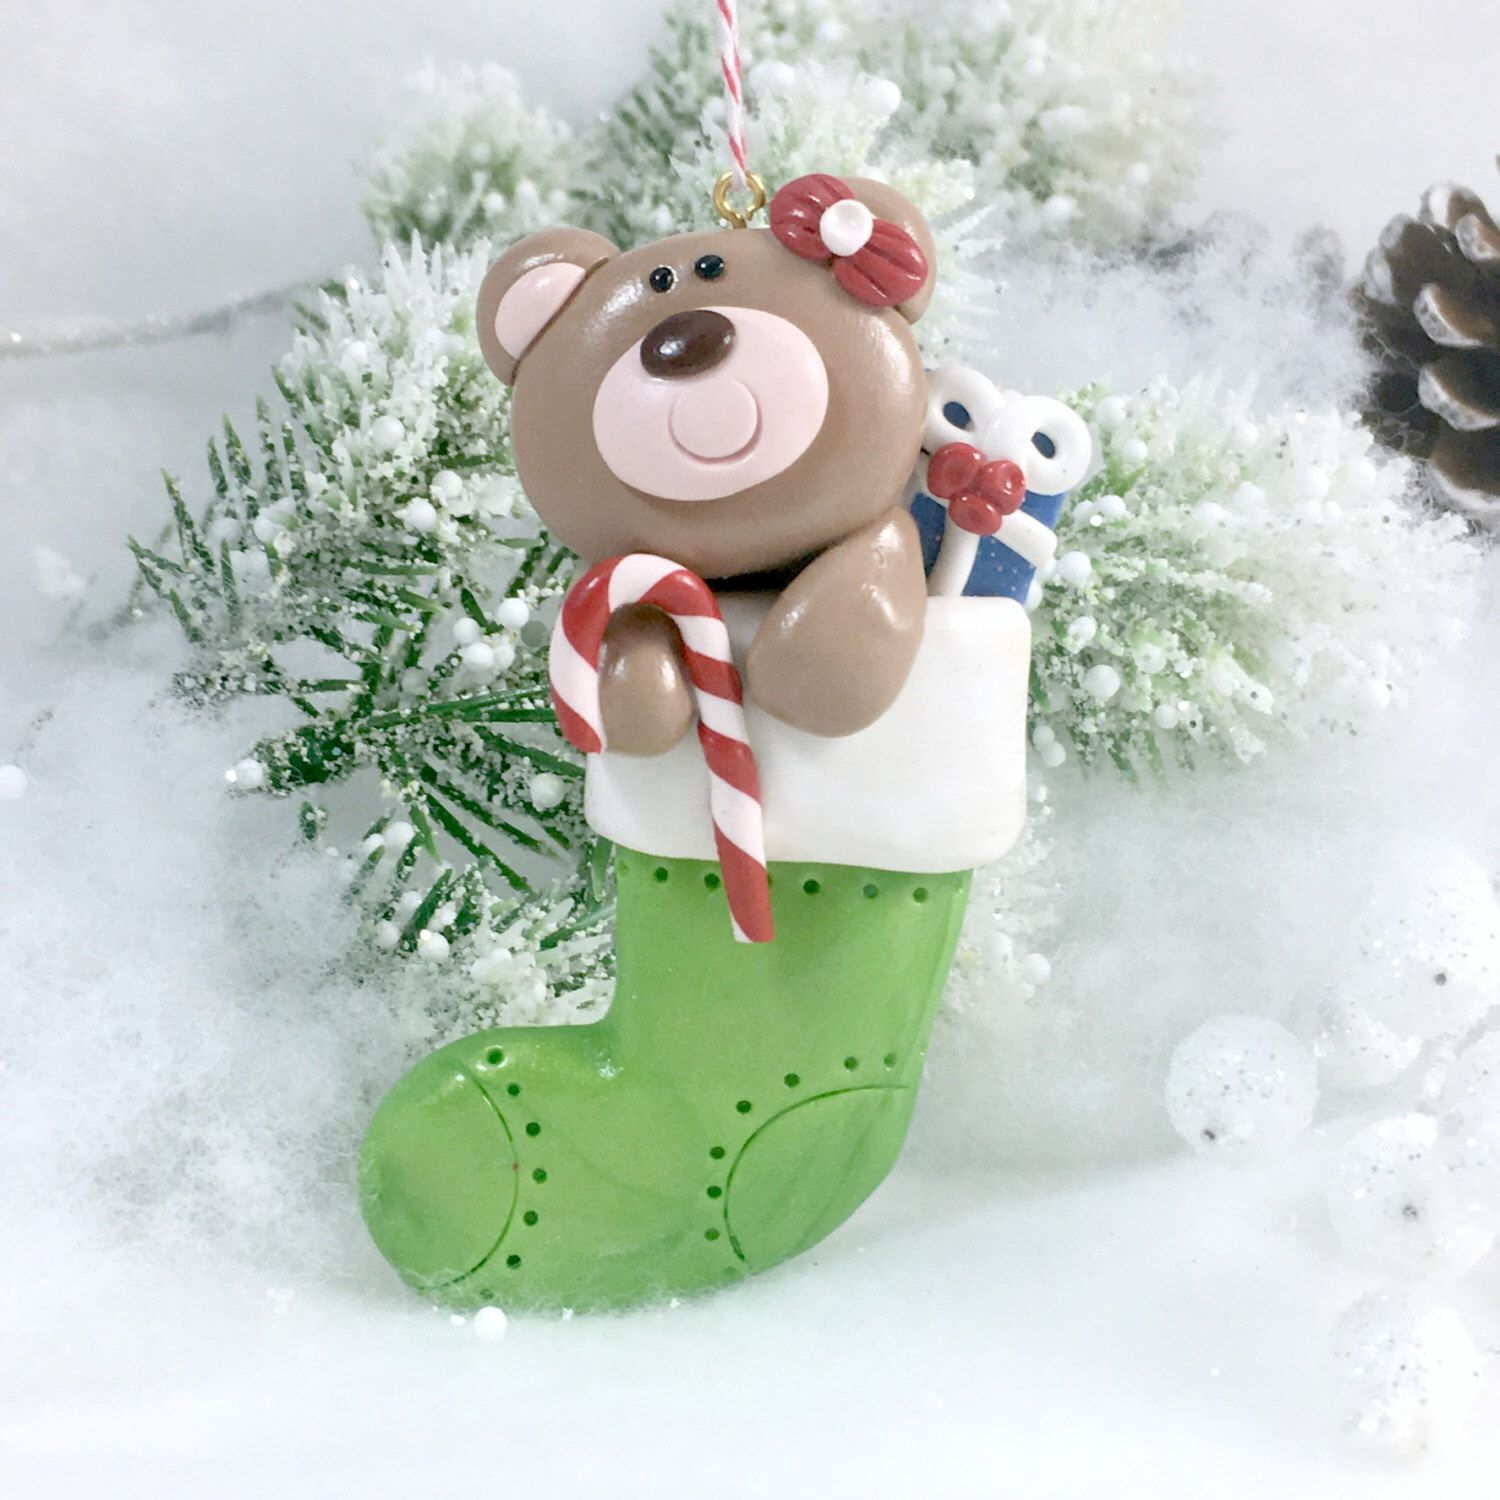 Handmade Teddy Bear Stocking Ornament Stocking Ornament Baby S First Christmas Ornament Poly Stocking Ornament Polymer Clay Christmas Polymer Clay Ornaments